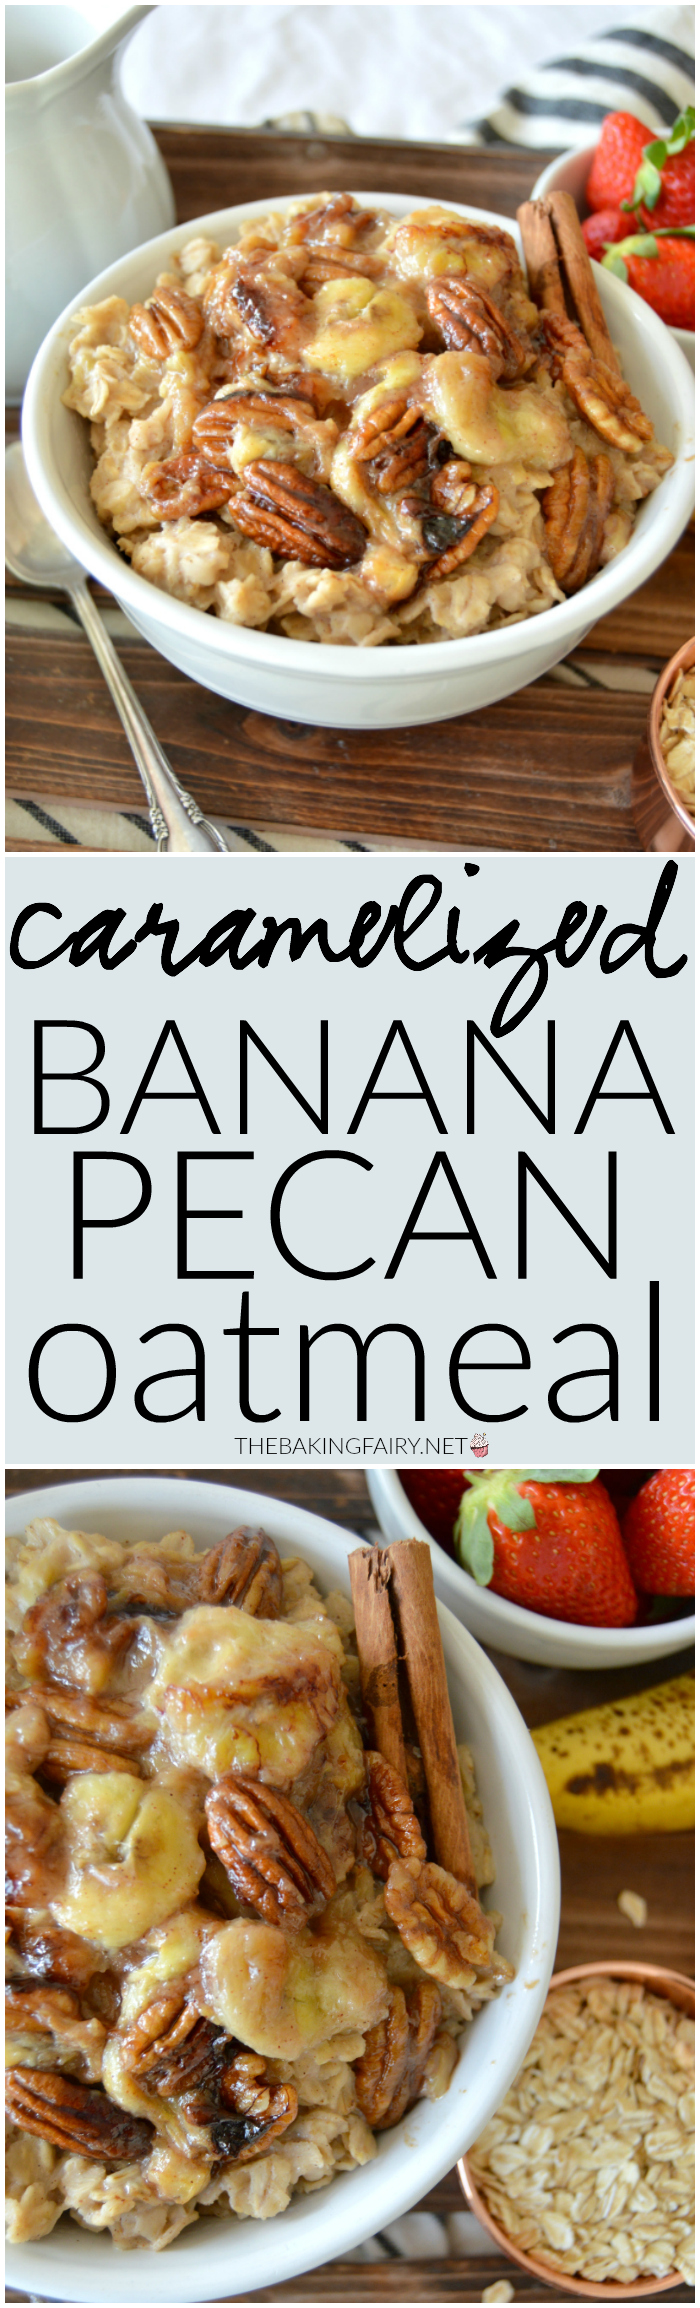 caramelized banana pecan oatmeal | The Baking Fairy #TasteTruvia #ad